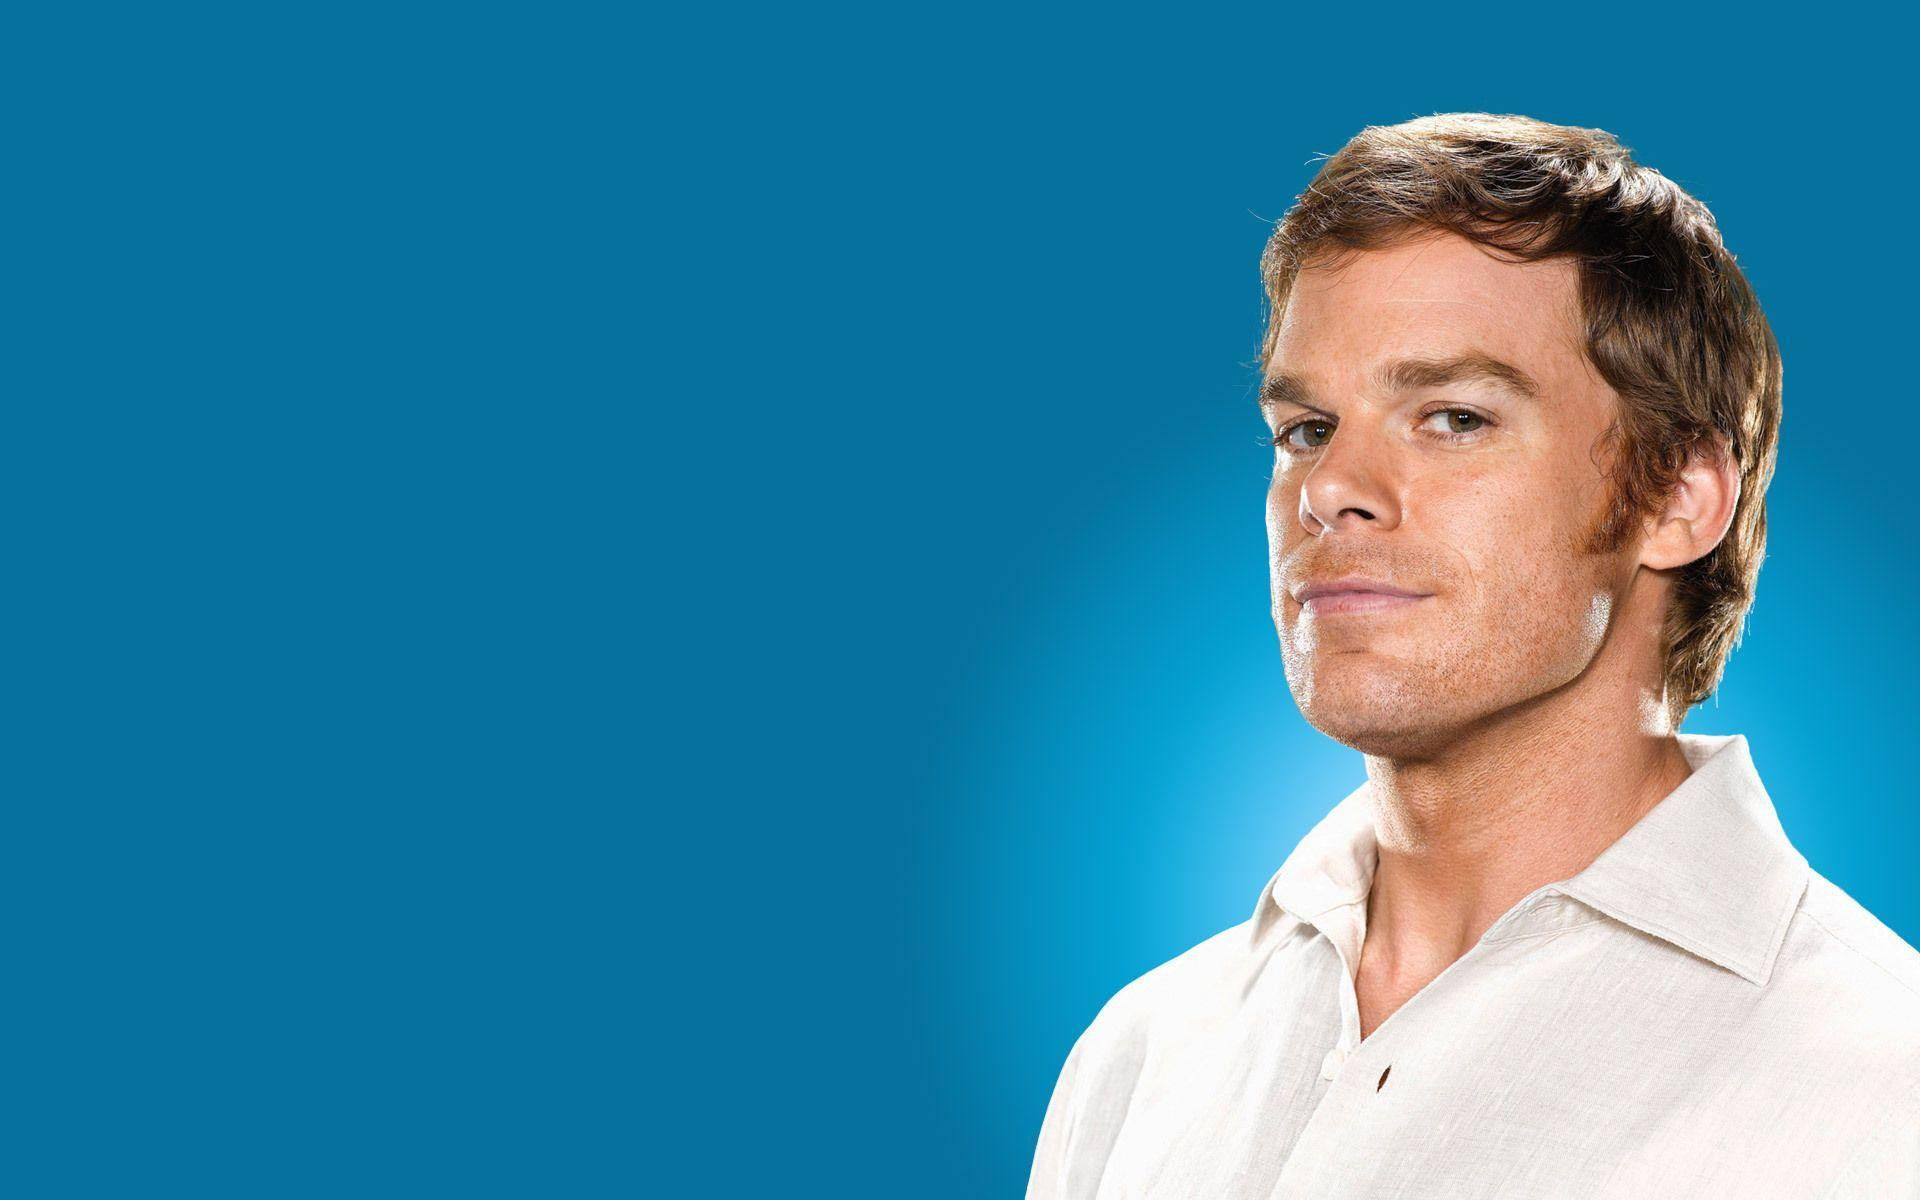 Dexter Wallpaper - Full HD wallpaper search - page 2